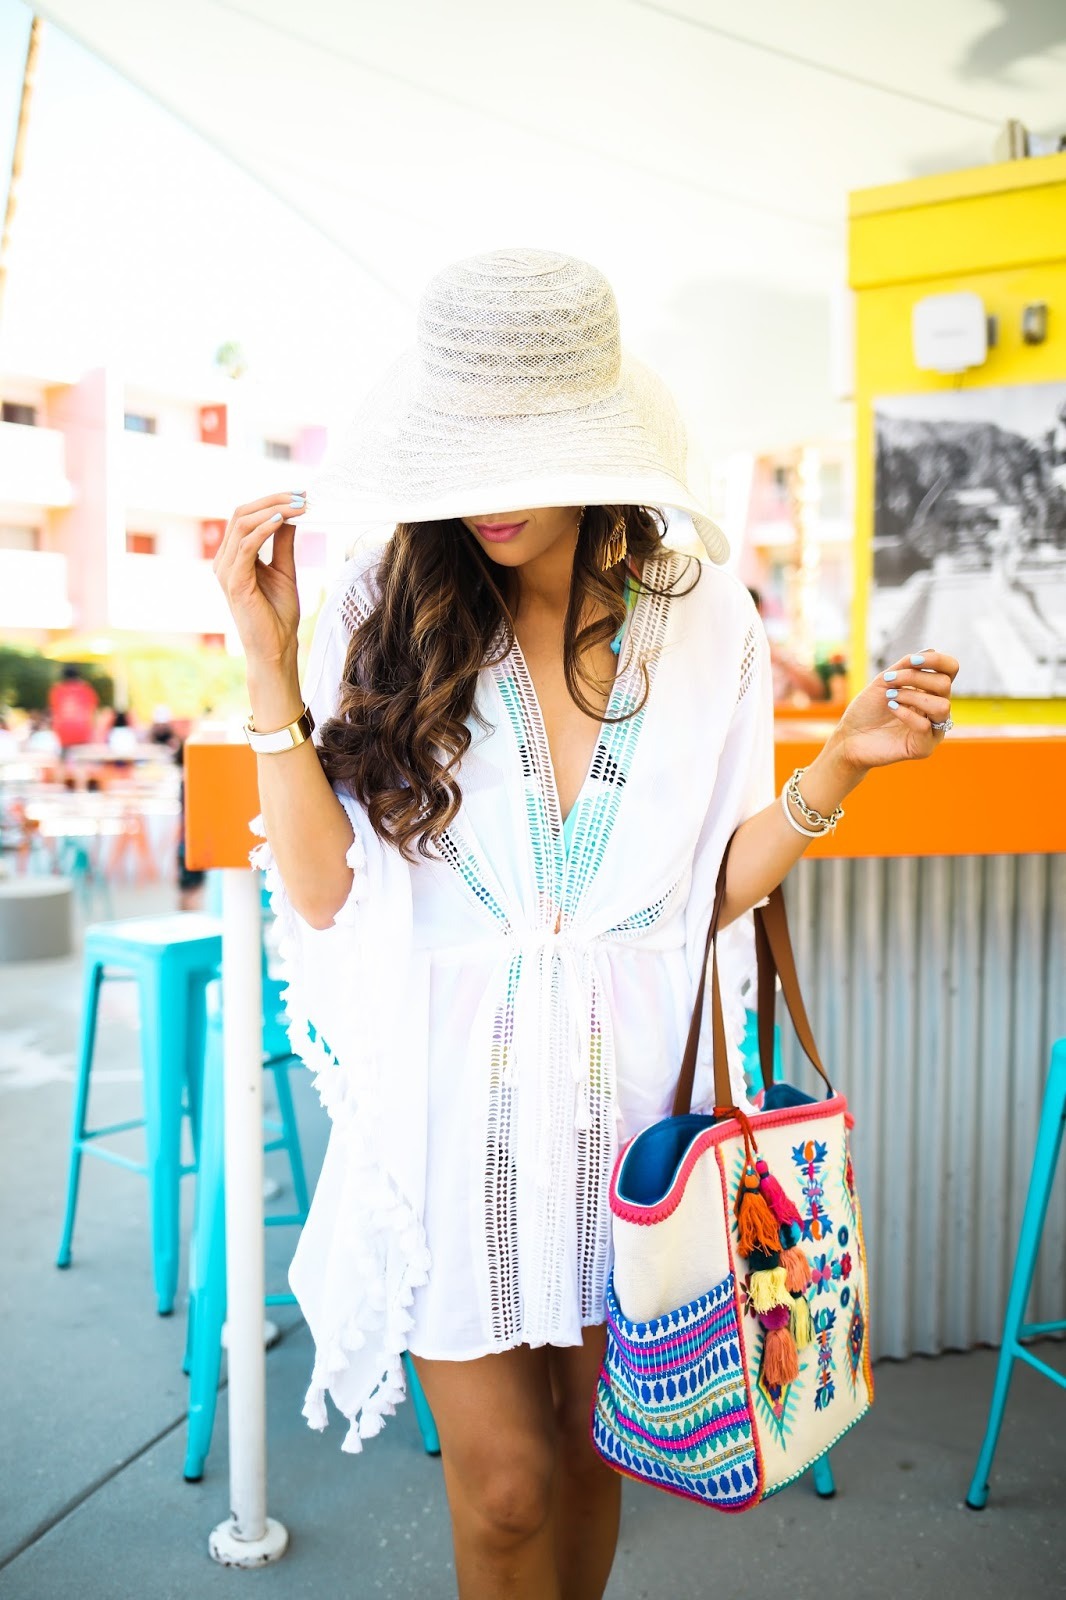 mara hoffman two piece swimsuit, YSL trapeze pink, YSL oil lipstick lipgloss, Brixxton straw hat, emily gemma, the saguaro, palm spring california, The sweetest thing blog, topshop cover up with tassels, white cover up with tassels, pinterest beach vacation outfit ideas, pinterest summer outfit ideas, pinterest swimsuit outfit ideas, steve madden beach bag, nordstrom beach bag, steve madden beytal tote, YSL tint in oil lipgloss review, valentino sandals rockstud nude, valentino sandals nude dupes, valentino sandals look a likes, rebecca minkoff sandals